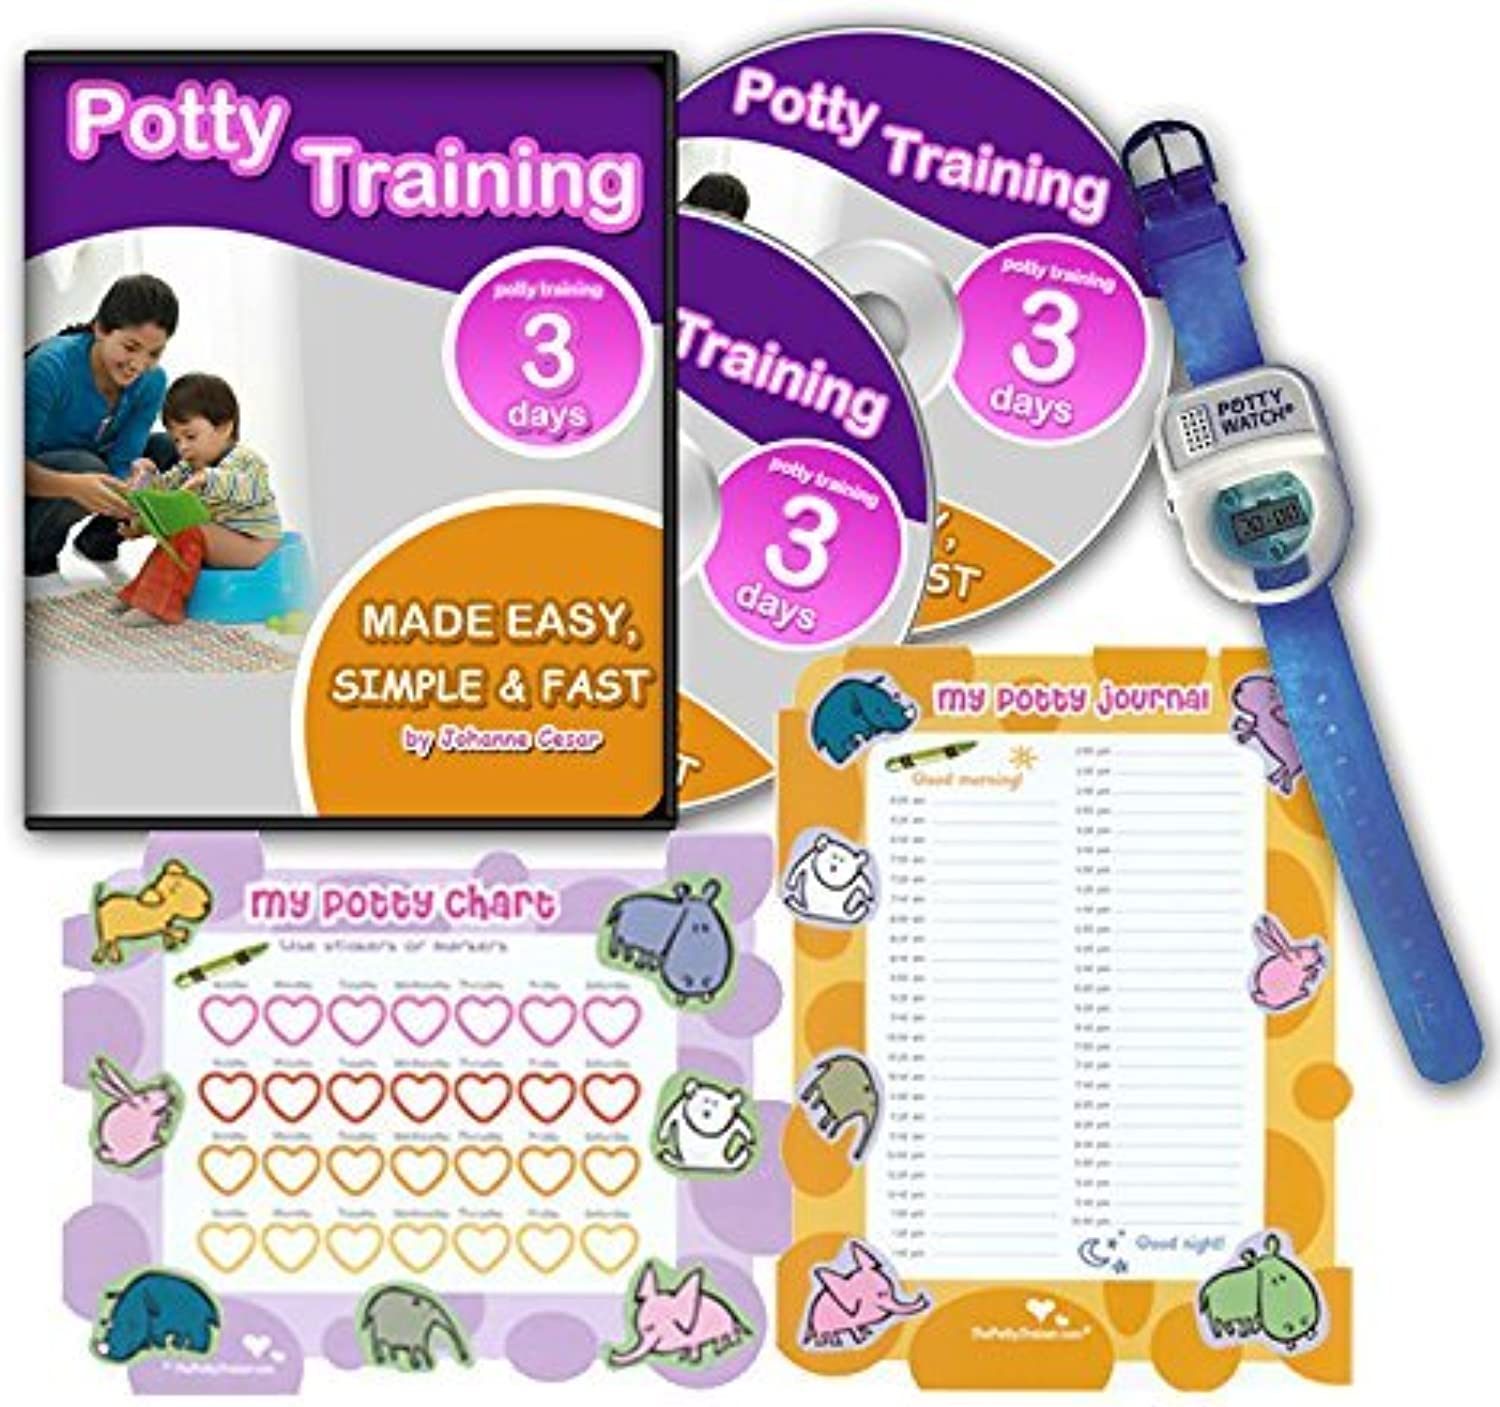 Potty Training In 3 Days - Ultimate Potty Training for Boys. Complete Kit Includes Potty Training In 3 Days Audio Guide, Laminated Potty Training Charts & 青 Potty Time Watch (青) by The Potty Trainer